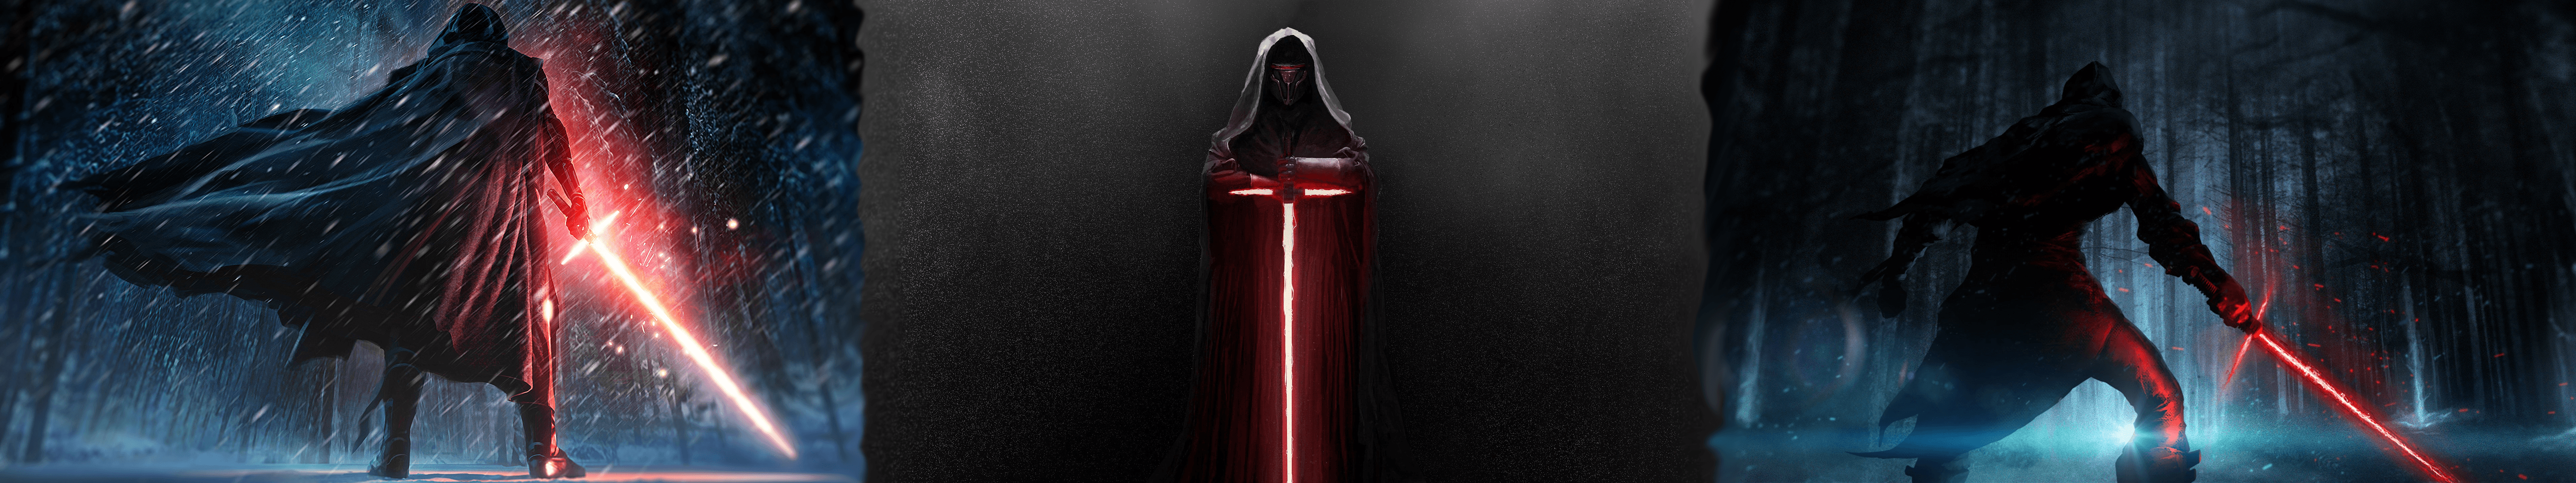 Darth Revan Wallpapers Wallpaper Cave 1018065 Png